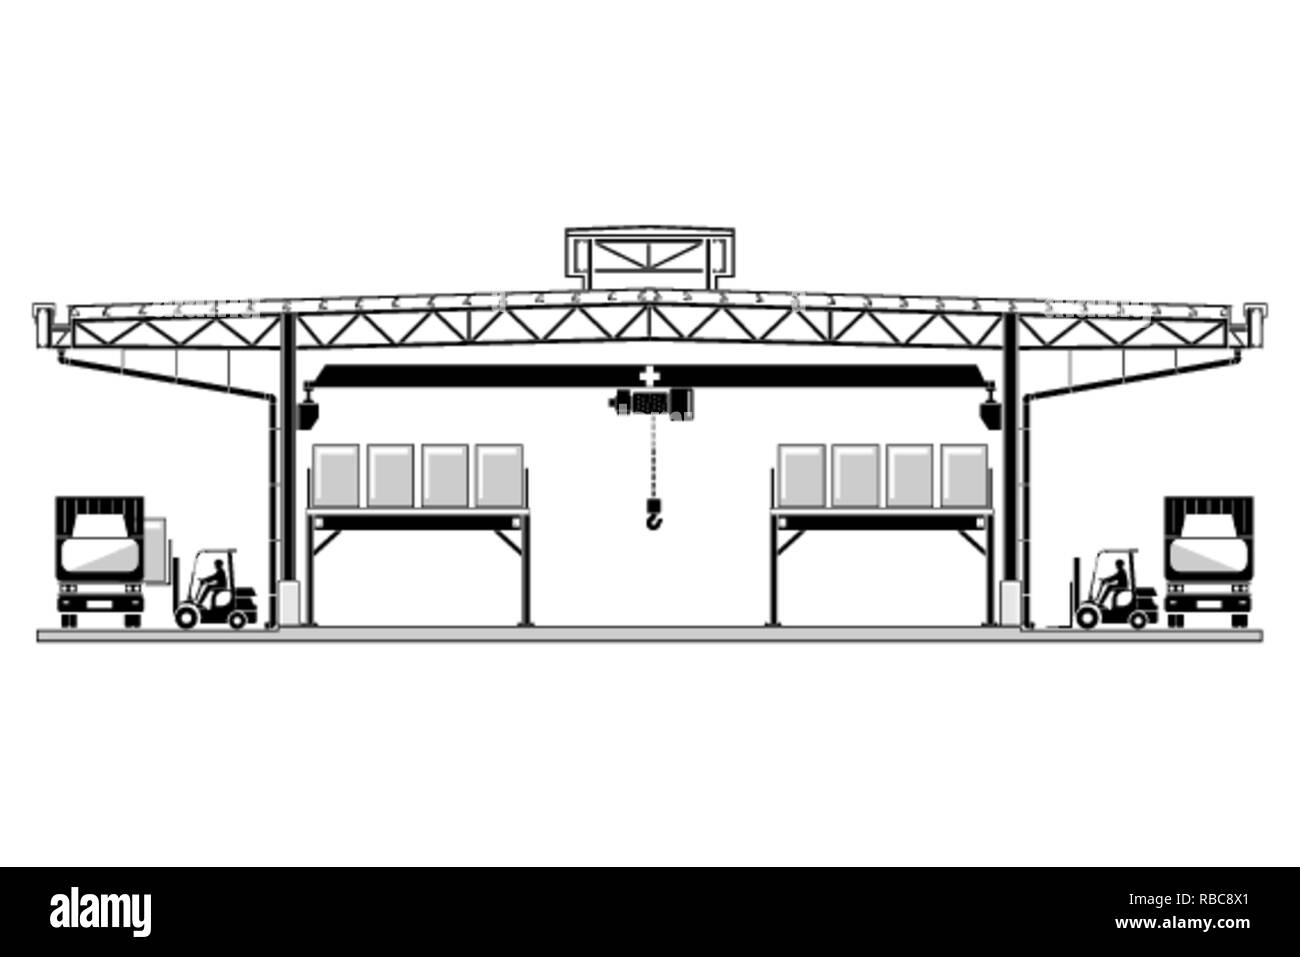 Warehouse, factory section, roof frame structure design